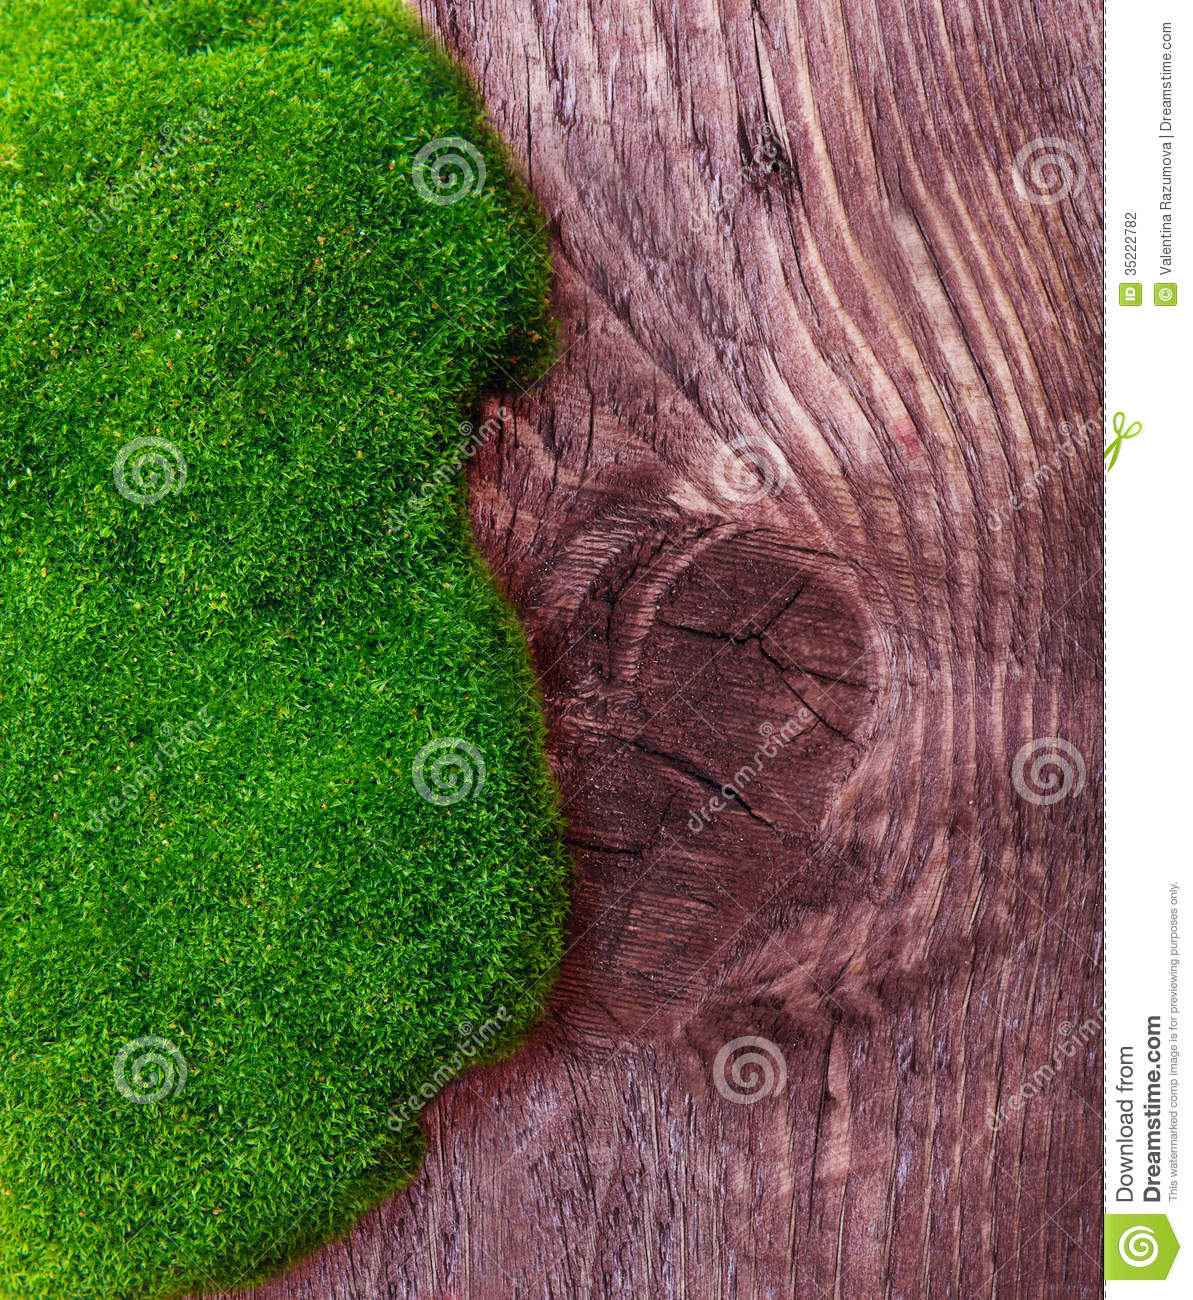 Green grass and soil stock photography image 35222782 for Soil and green